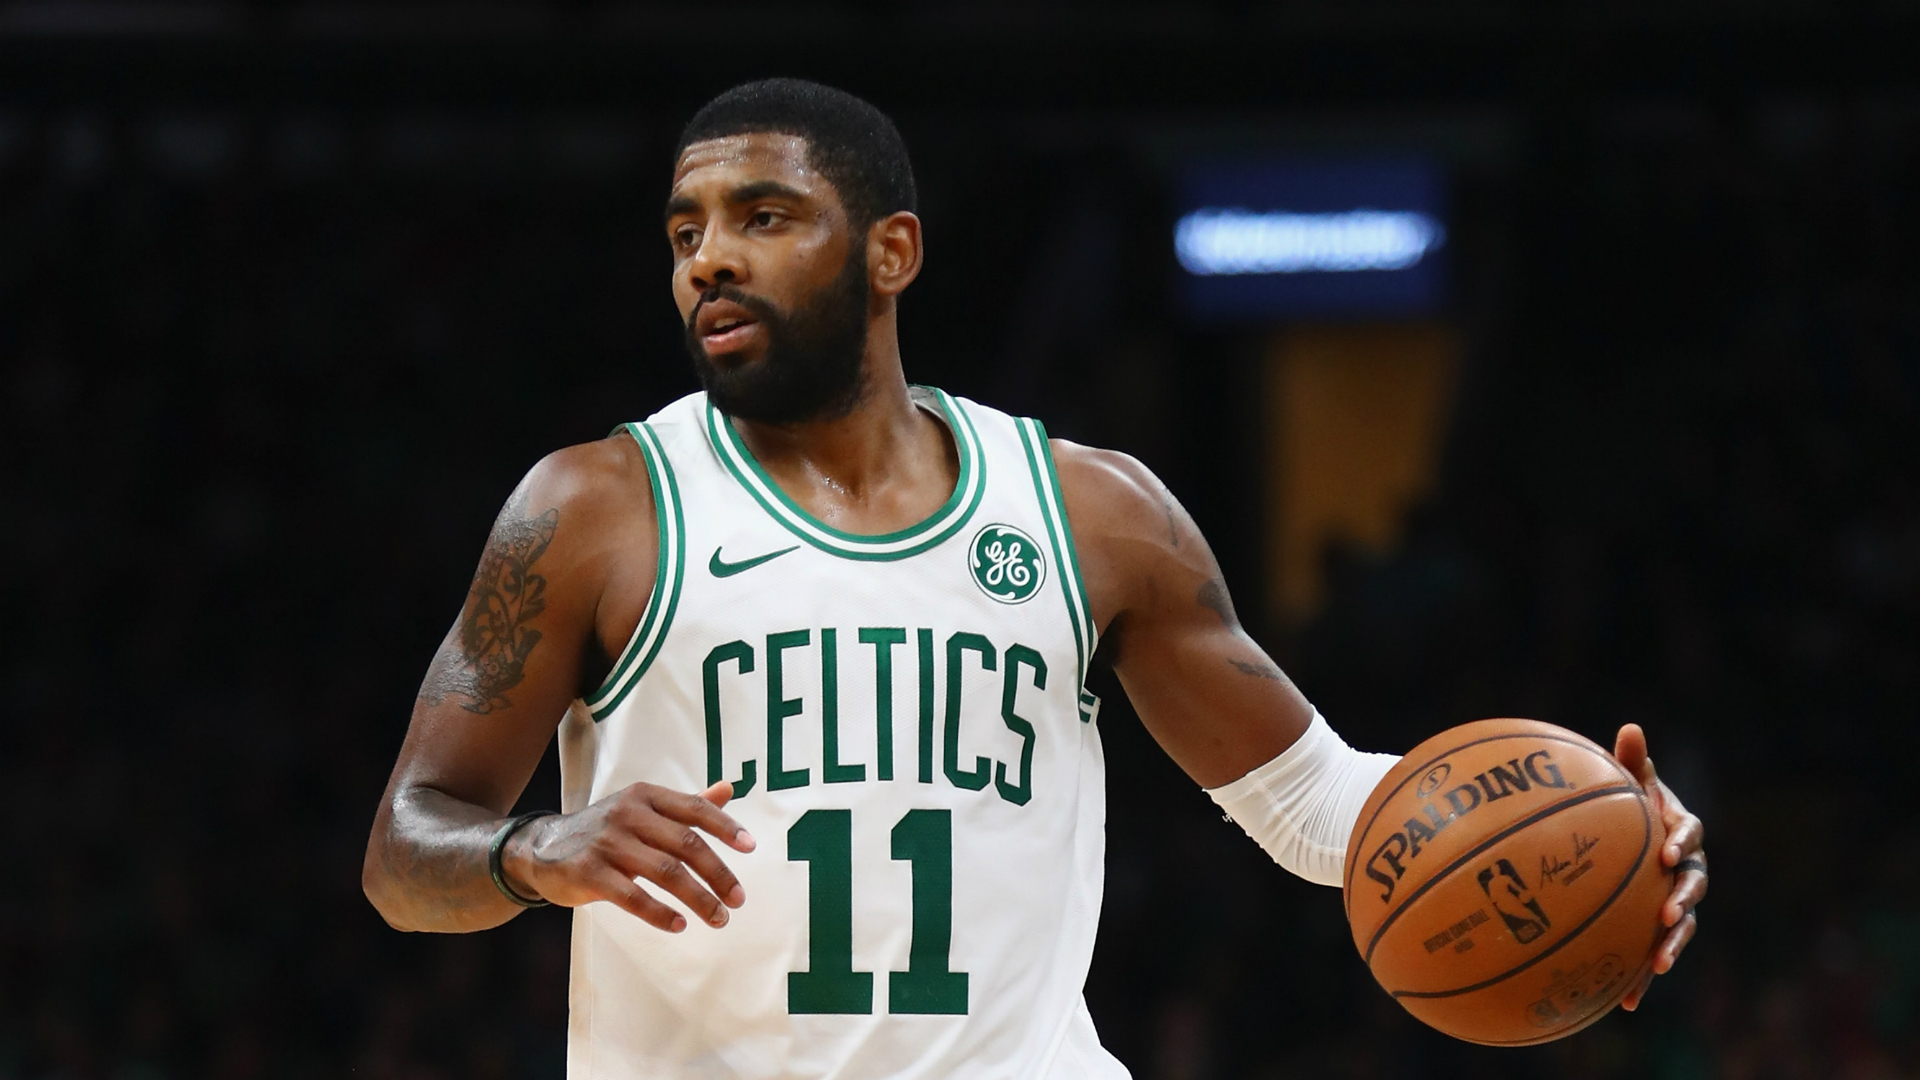 Kyrie Irving injury update: Celtics guard says shoulder will be fine after leaving Knicks game early